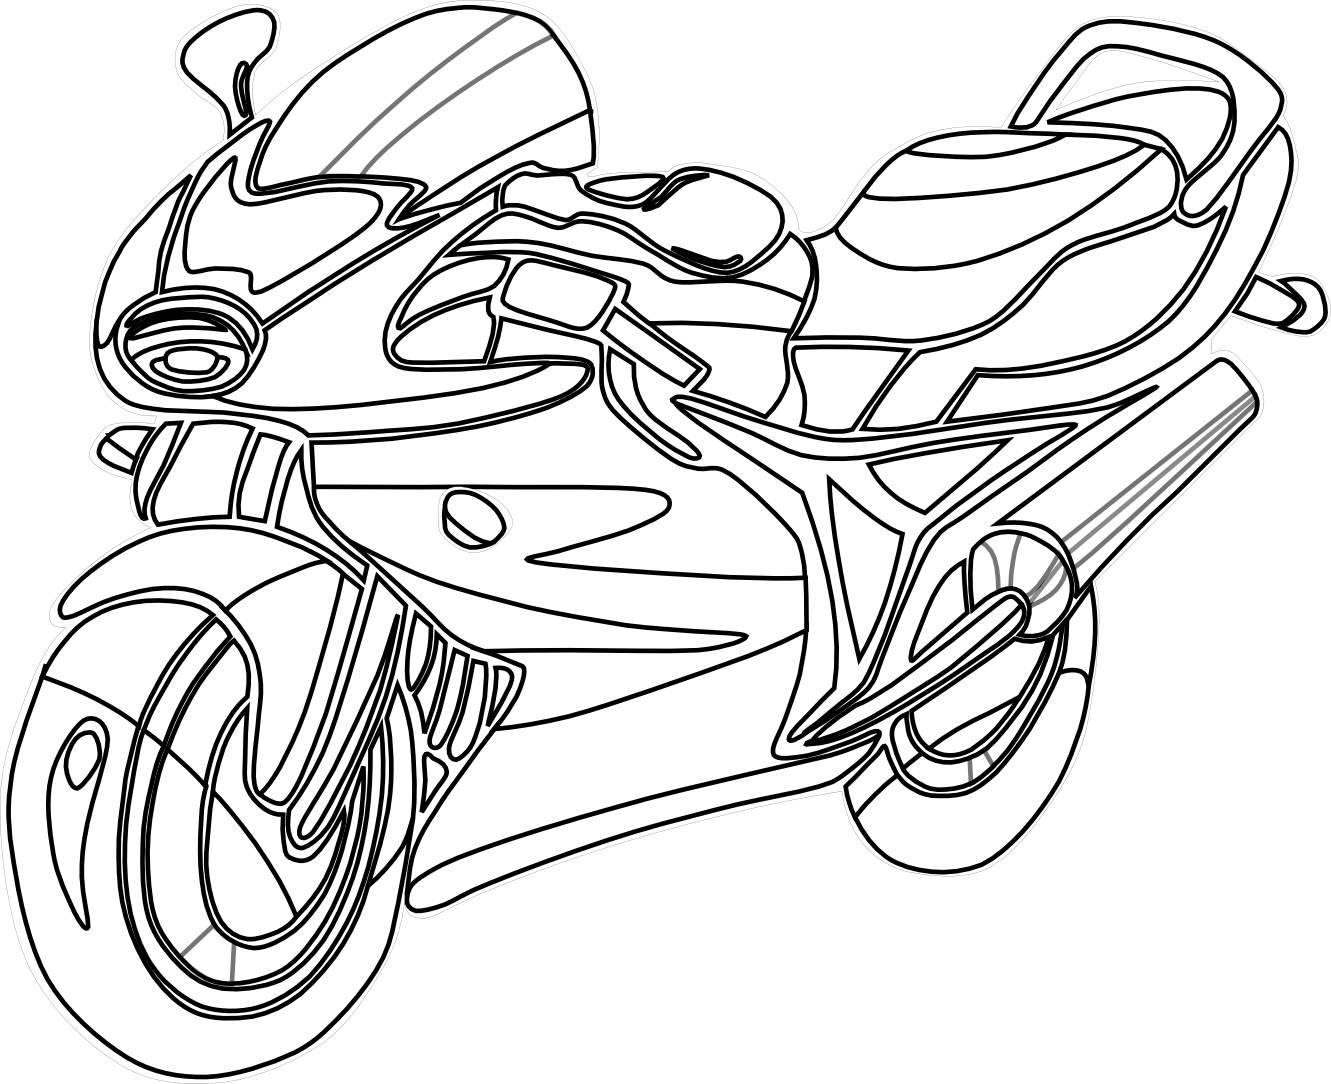 Race clipart motor bike. Motorcycle black and white